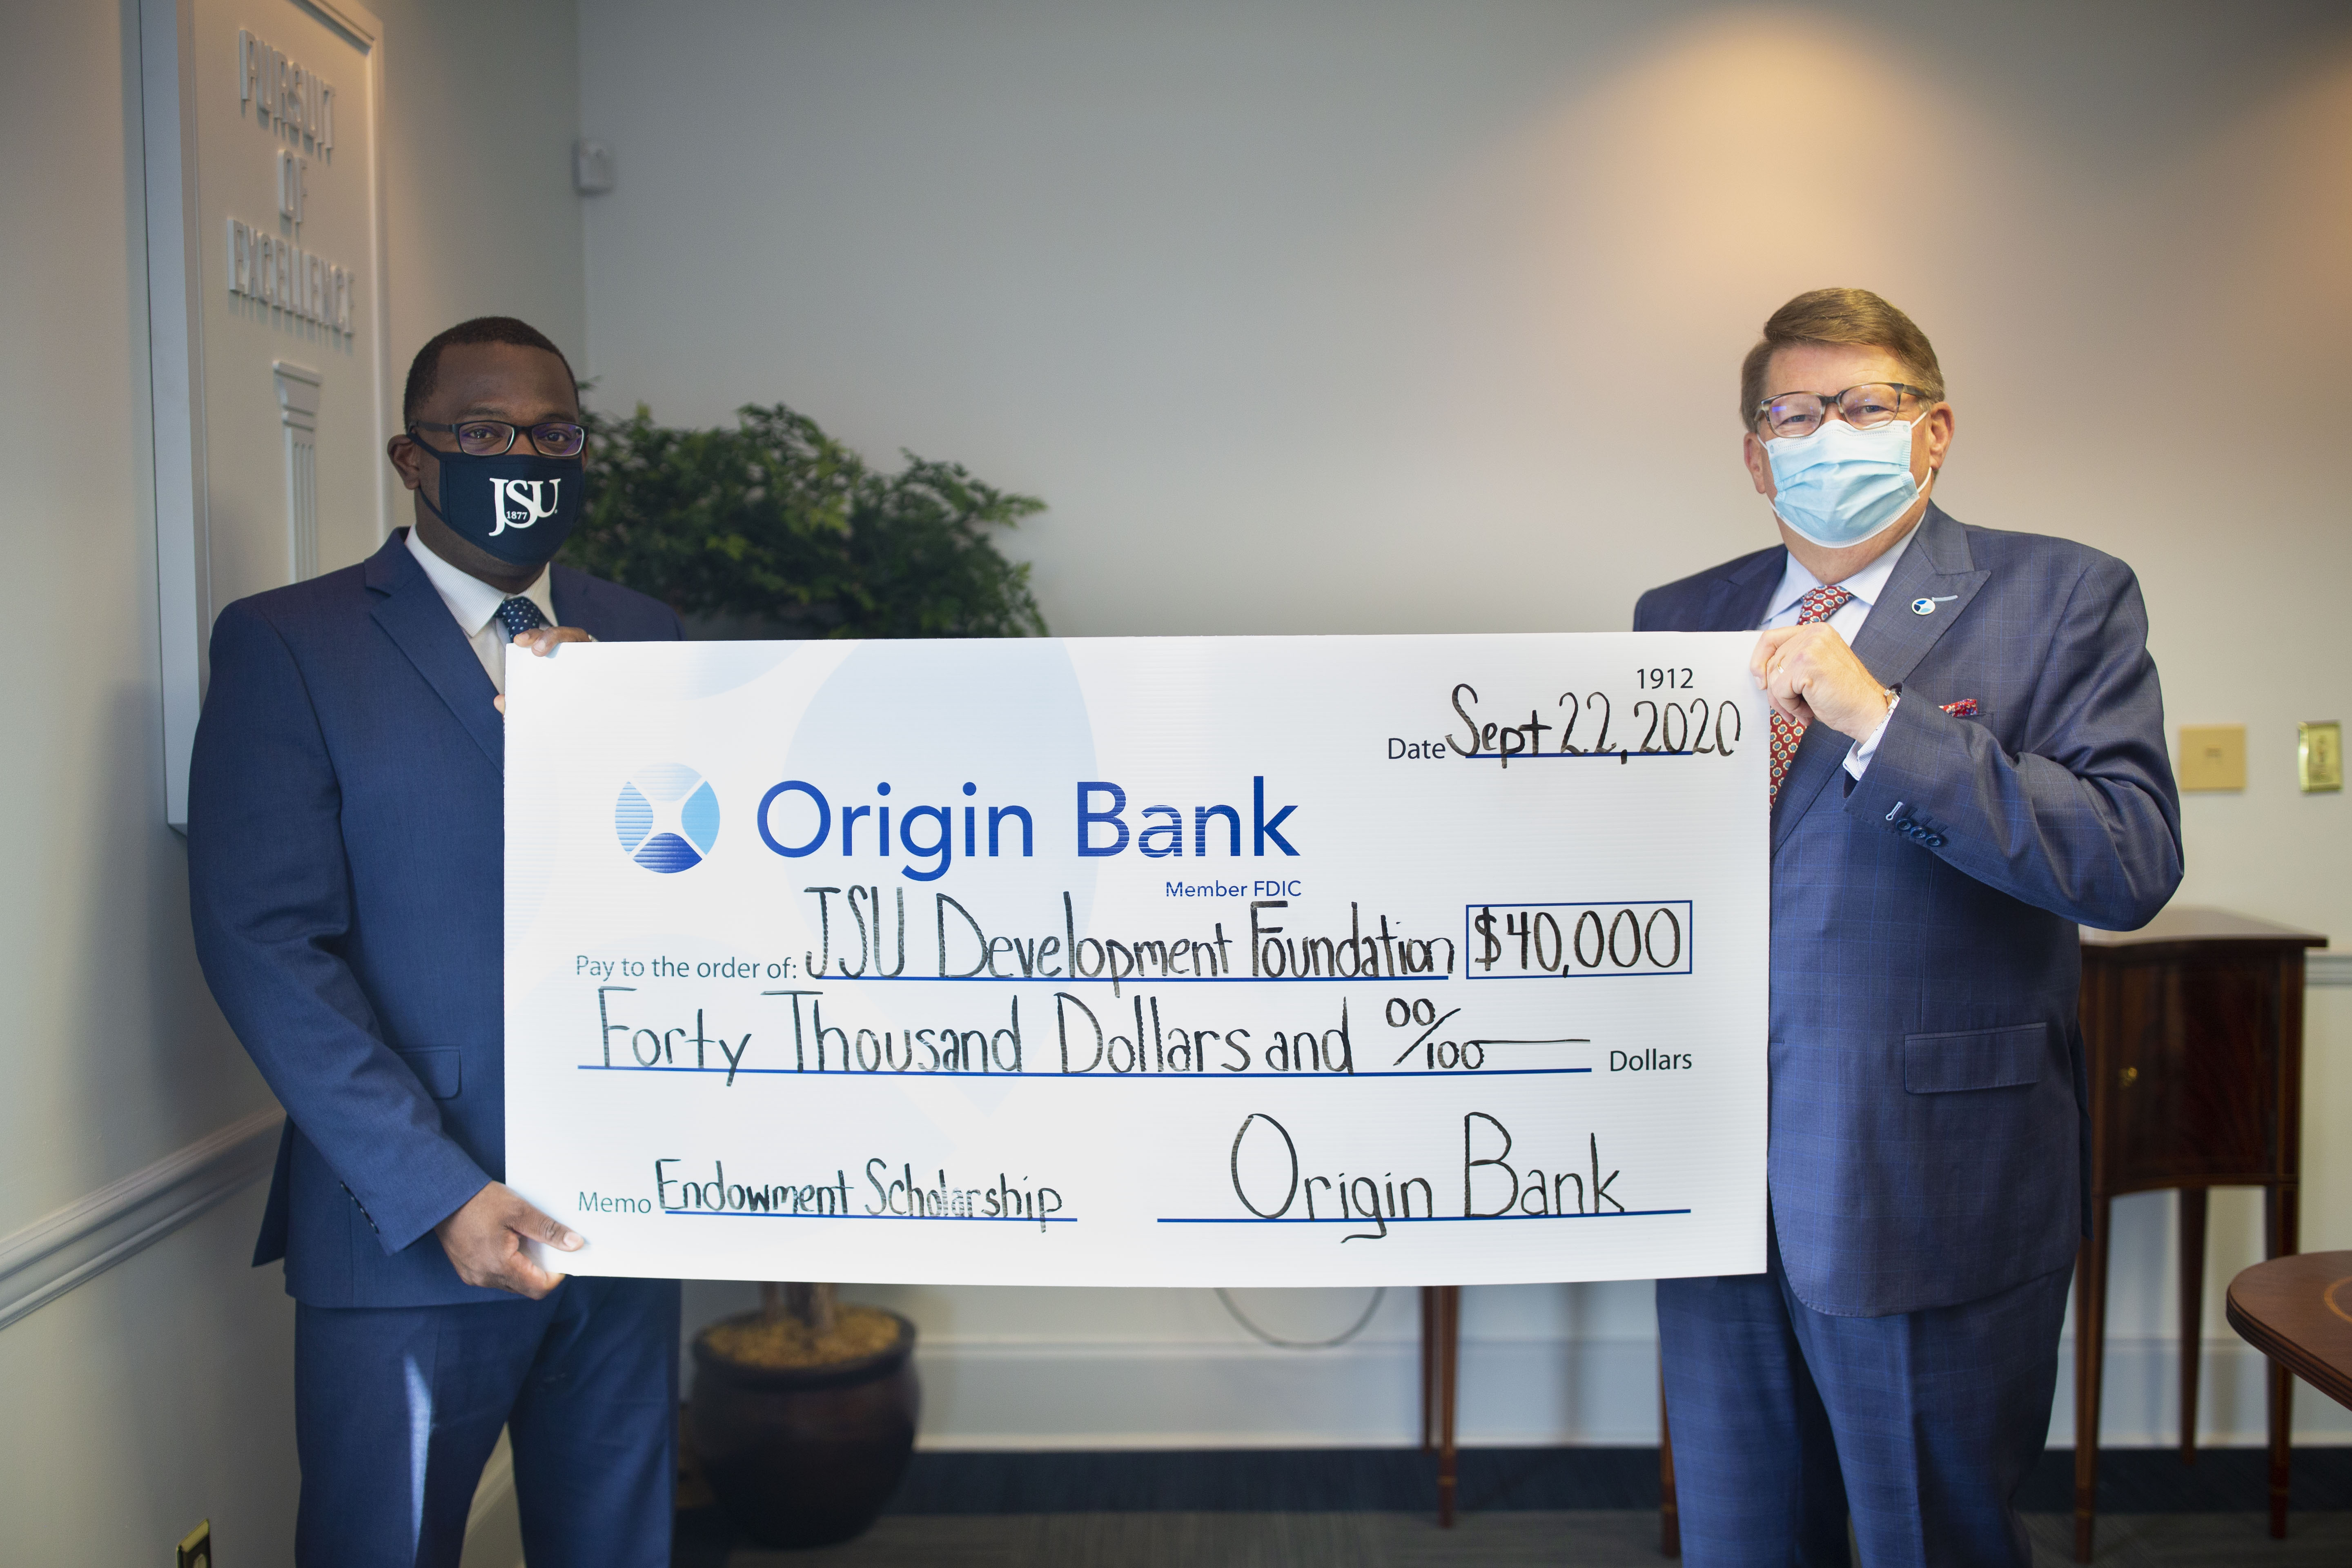 Origin's Bank State President, Larry Ratzlaff presented a check for $40,000 to JSU President Thomas Hudson for student scholarships. (Photo by William Kelly/University Communications)